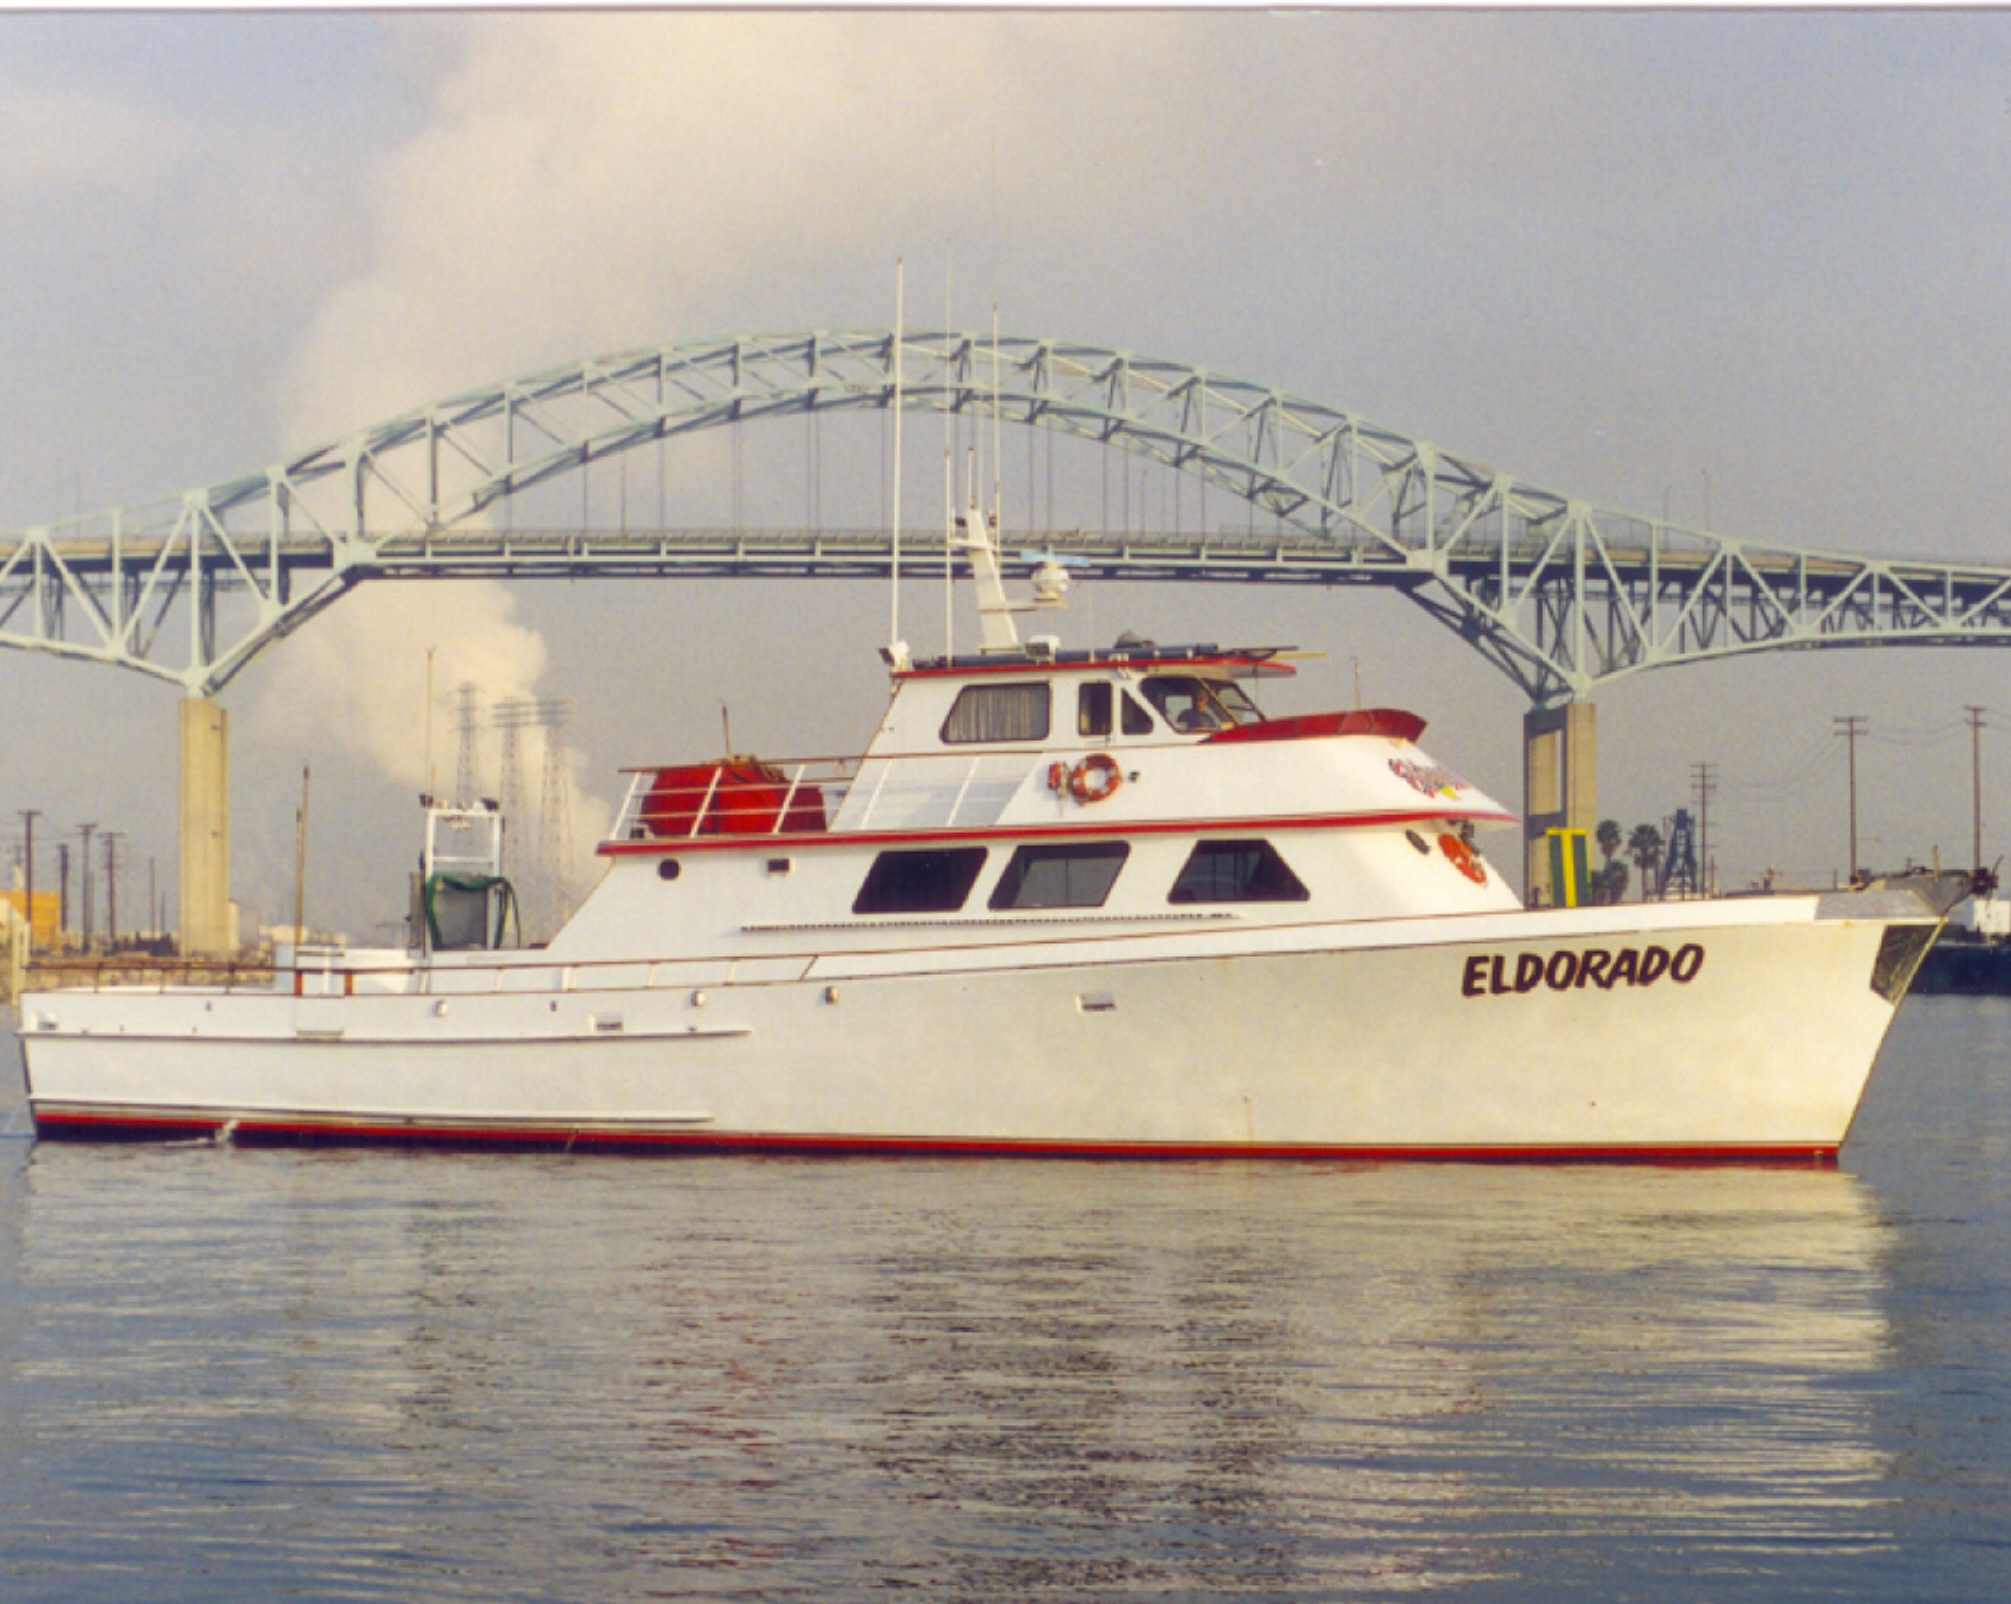 Our Overnight Boat Eldorado Is Curly Fishing San Nicolas Island For Lingcod Rockfish Sheephead